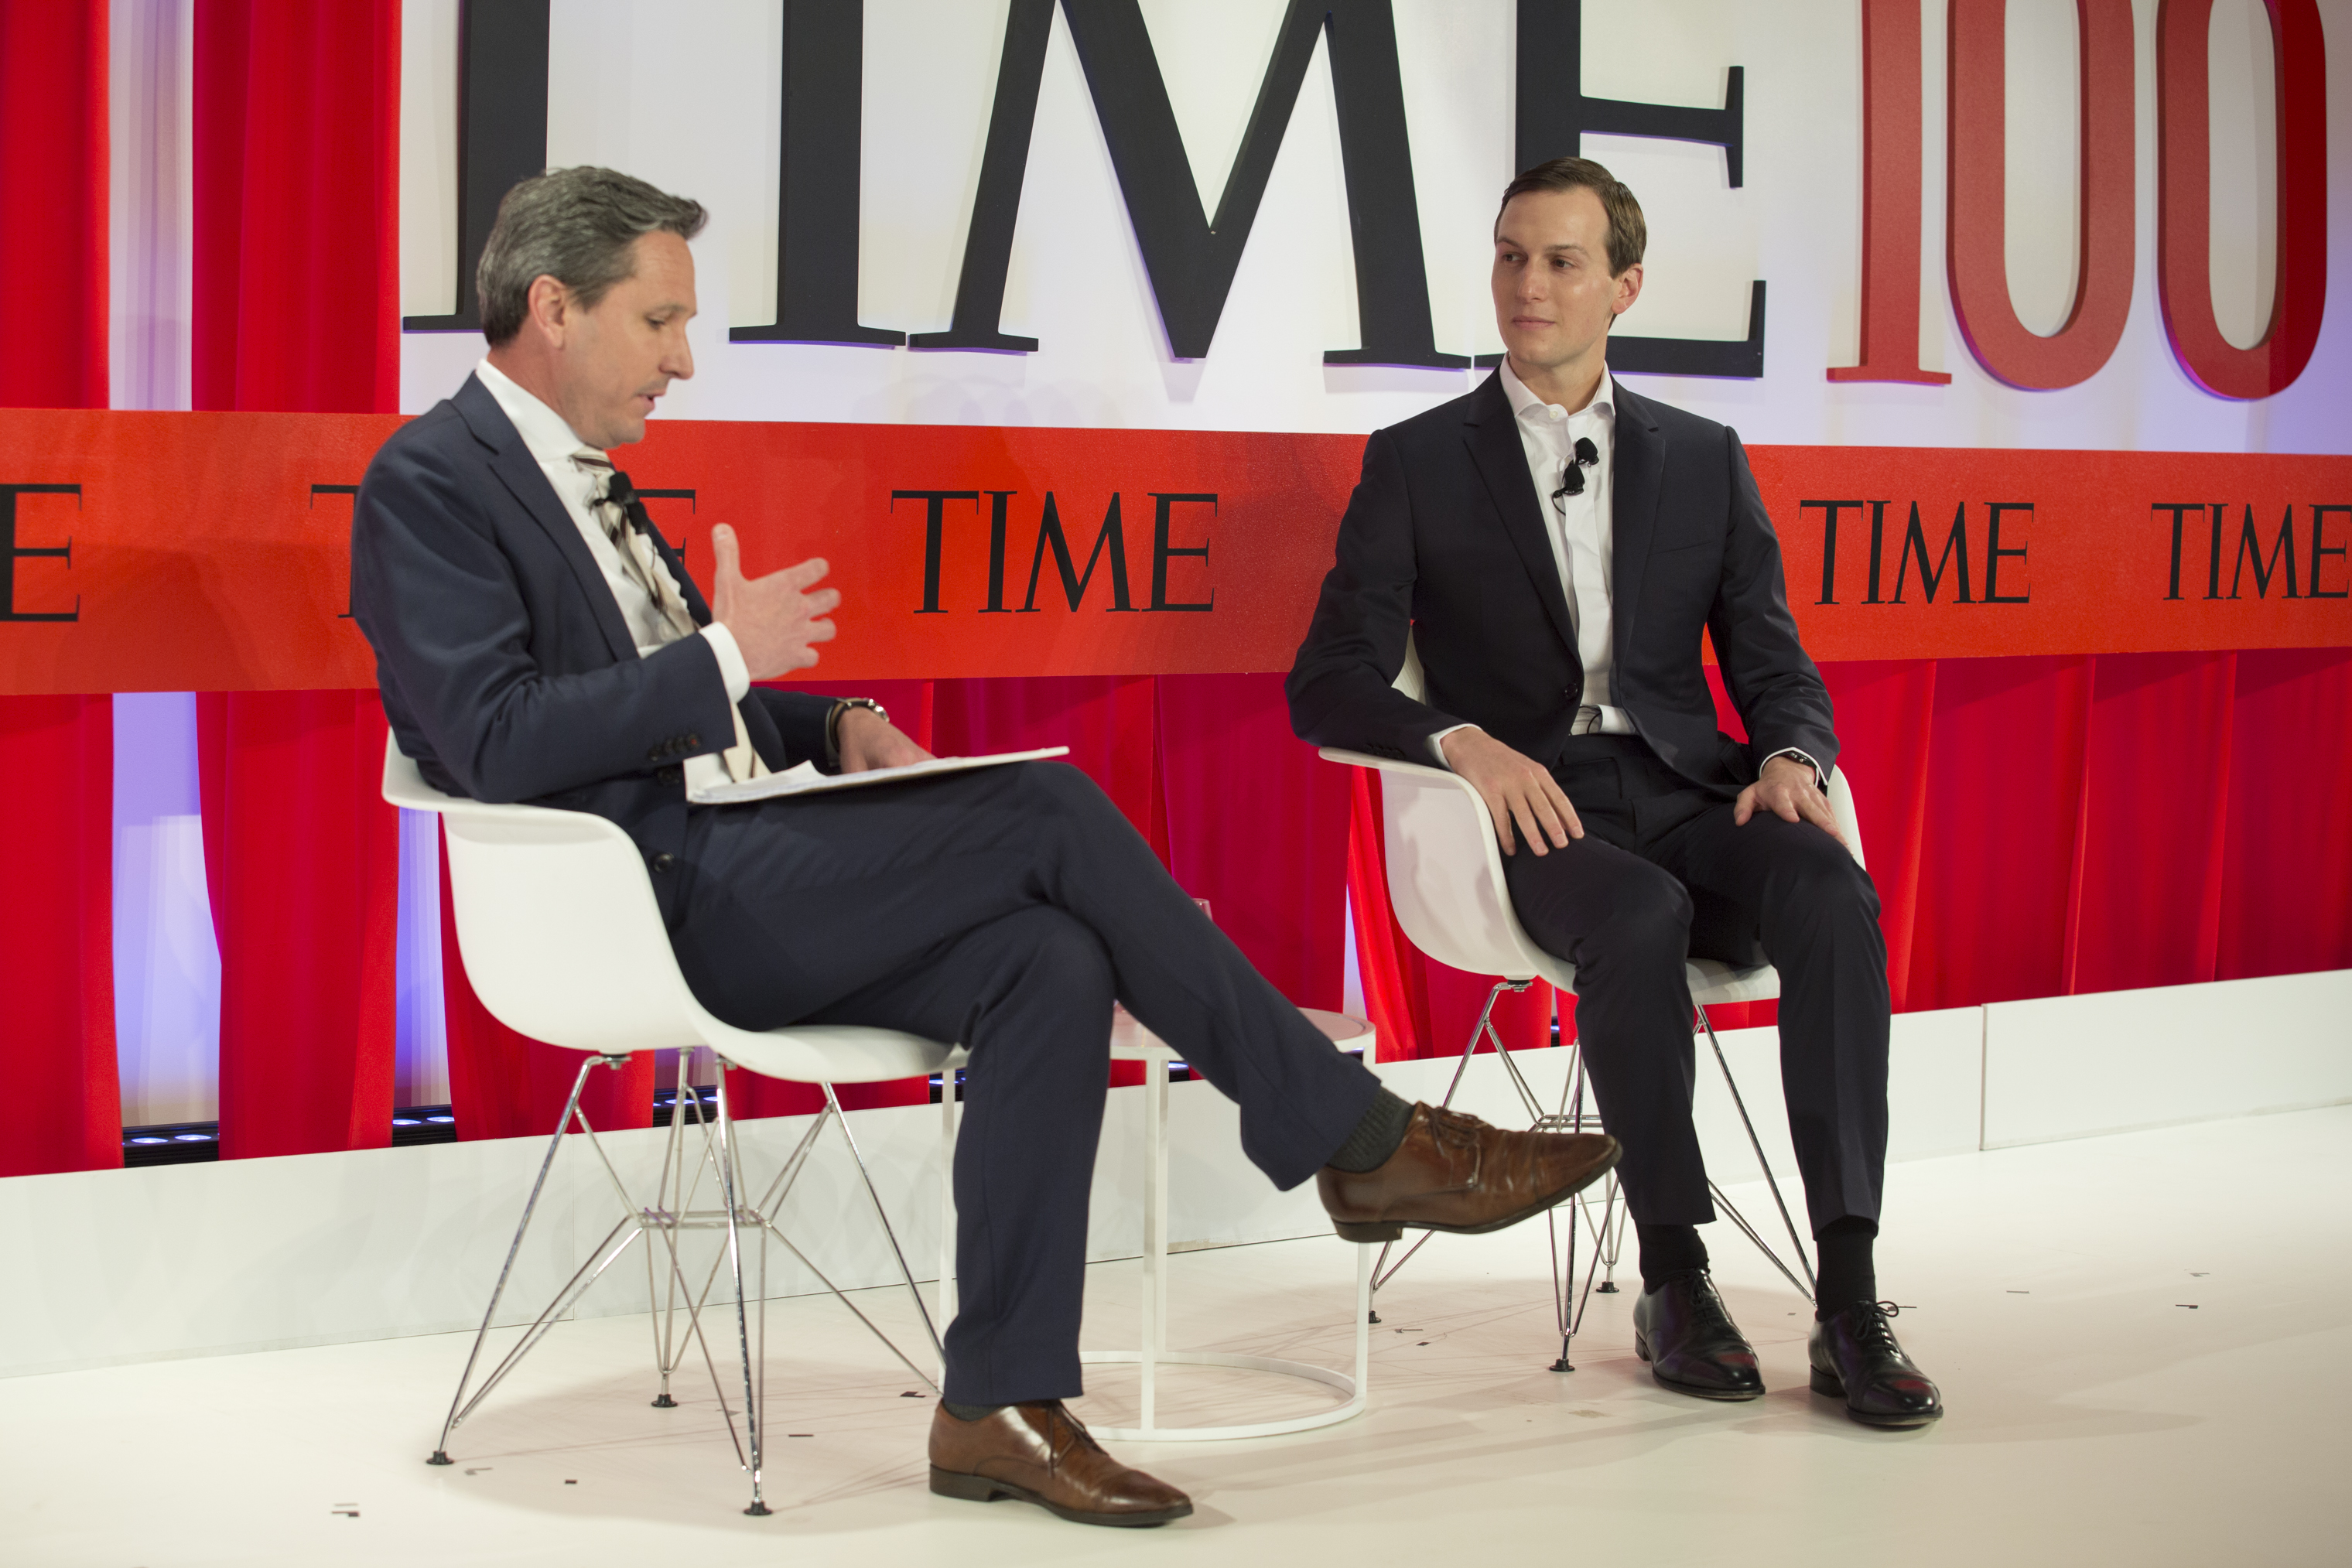 Assistant and Senior Adviser to the President Jared Kushner speaks to Brian Bennett, Senior White House Correspondent for TIME during an interview at the TIME100 Summit in New York, on April 23, 2019.